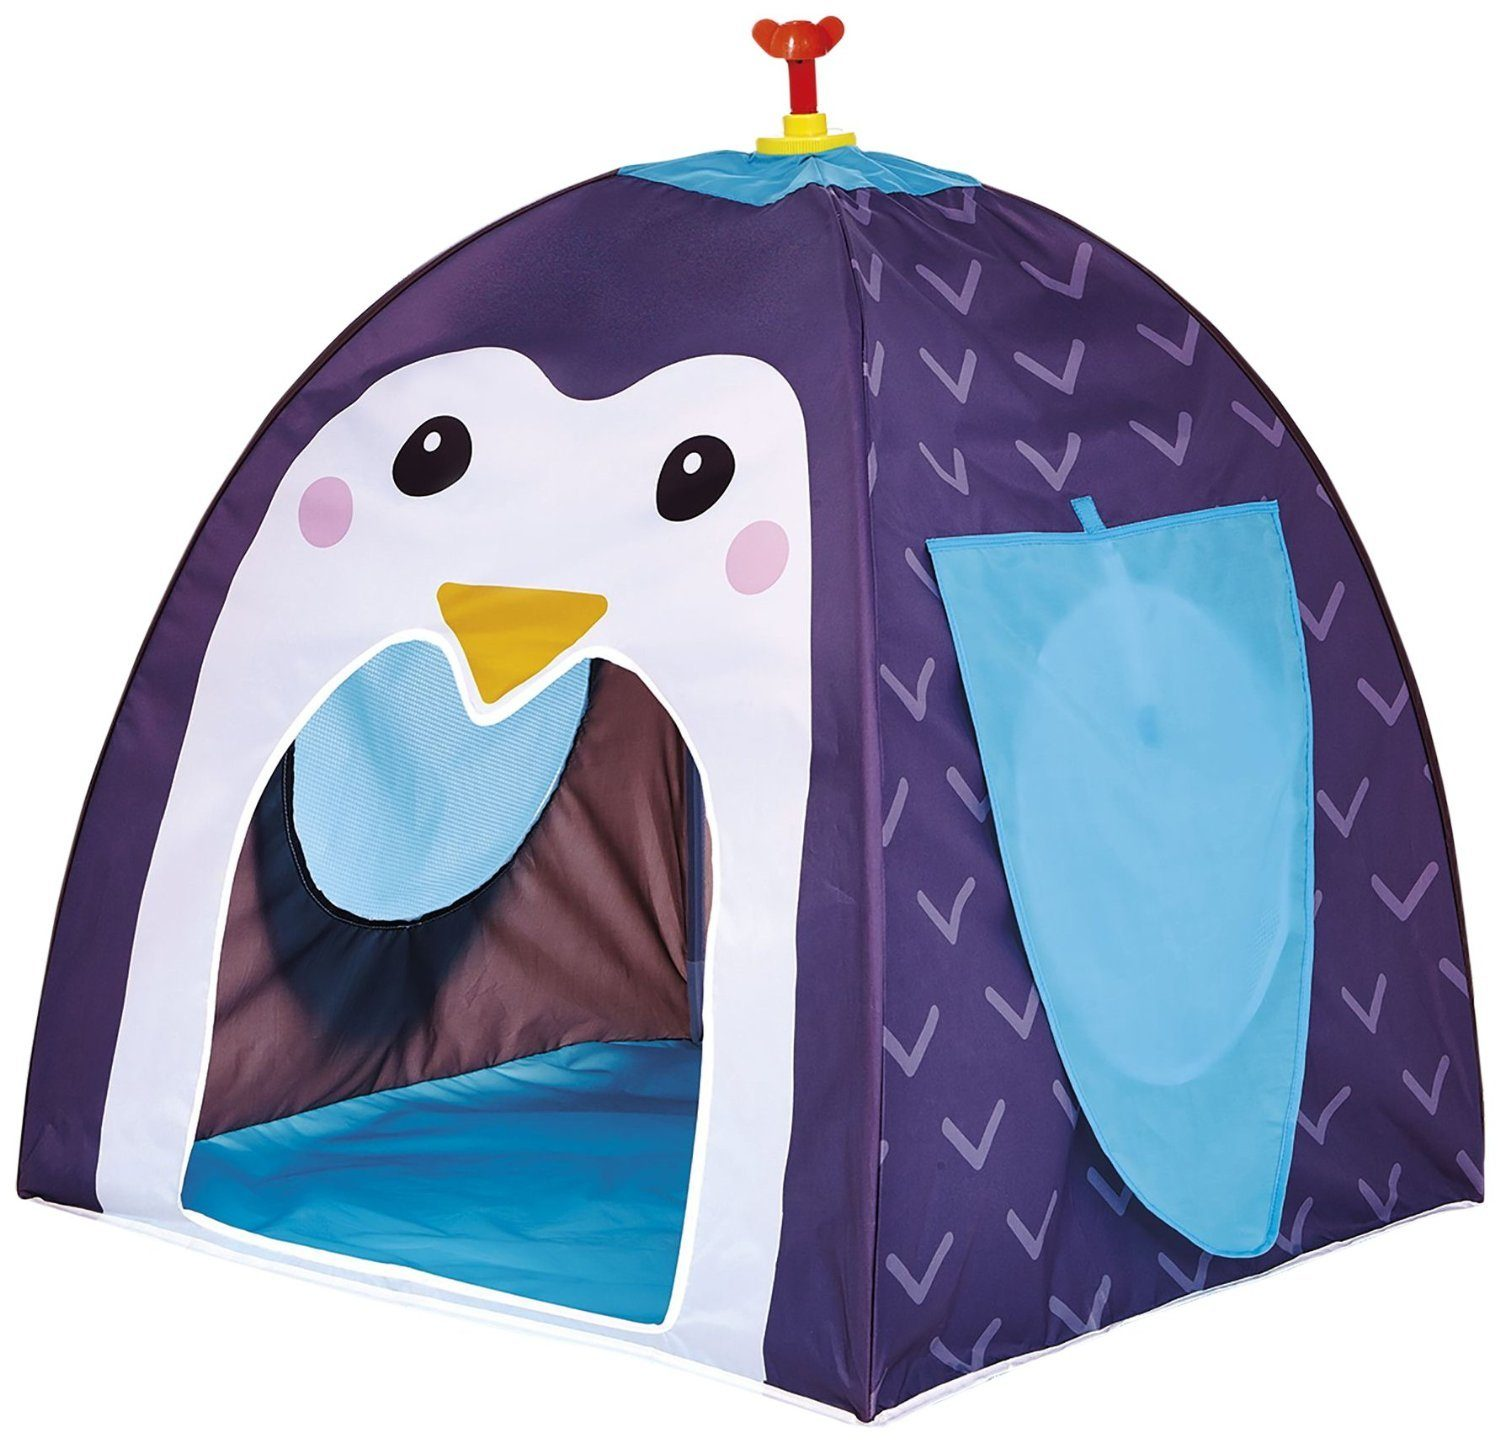 Ugo Penguin Tent Only $22.17 (Reg. $49.99)!